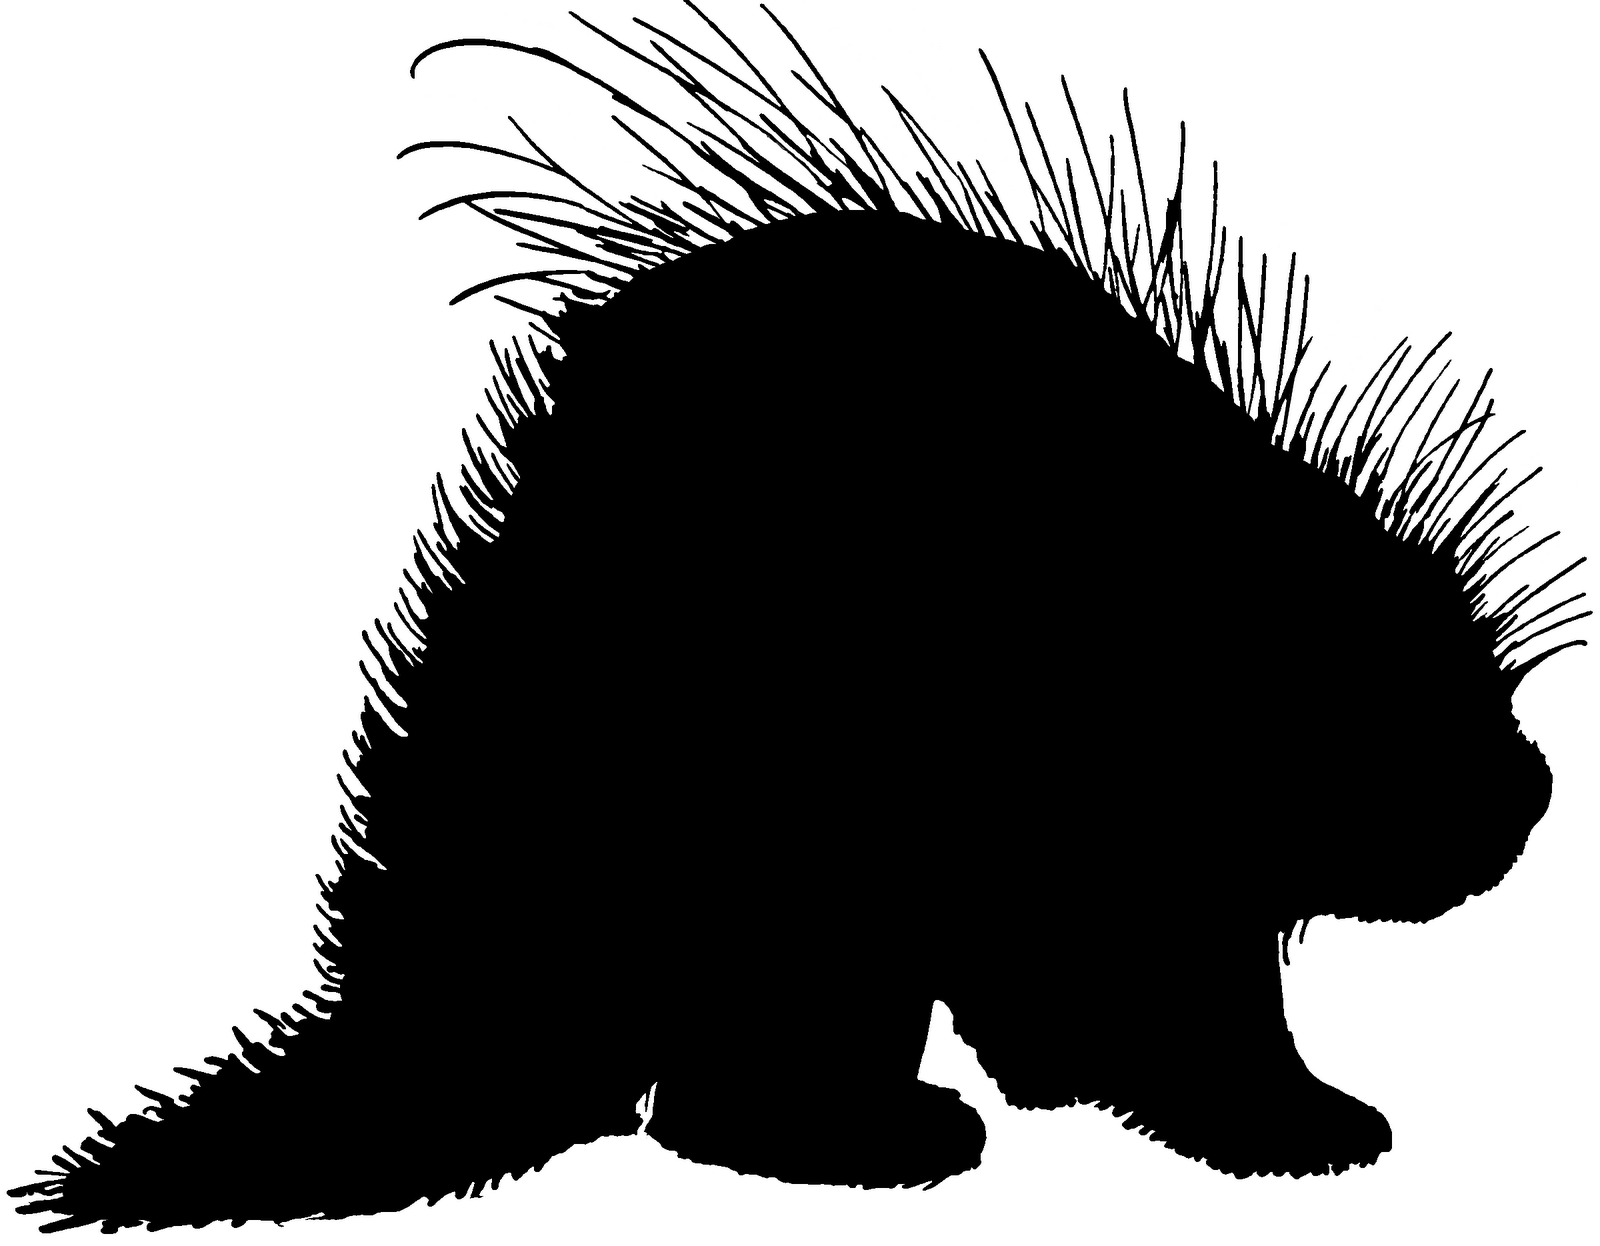 New World Porcupine clipart #2, Download drawings